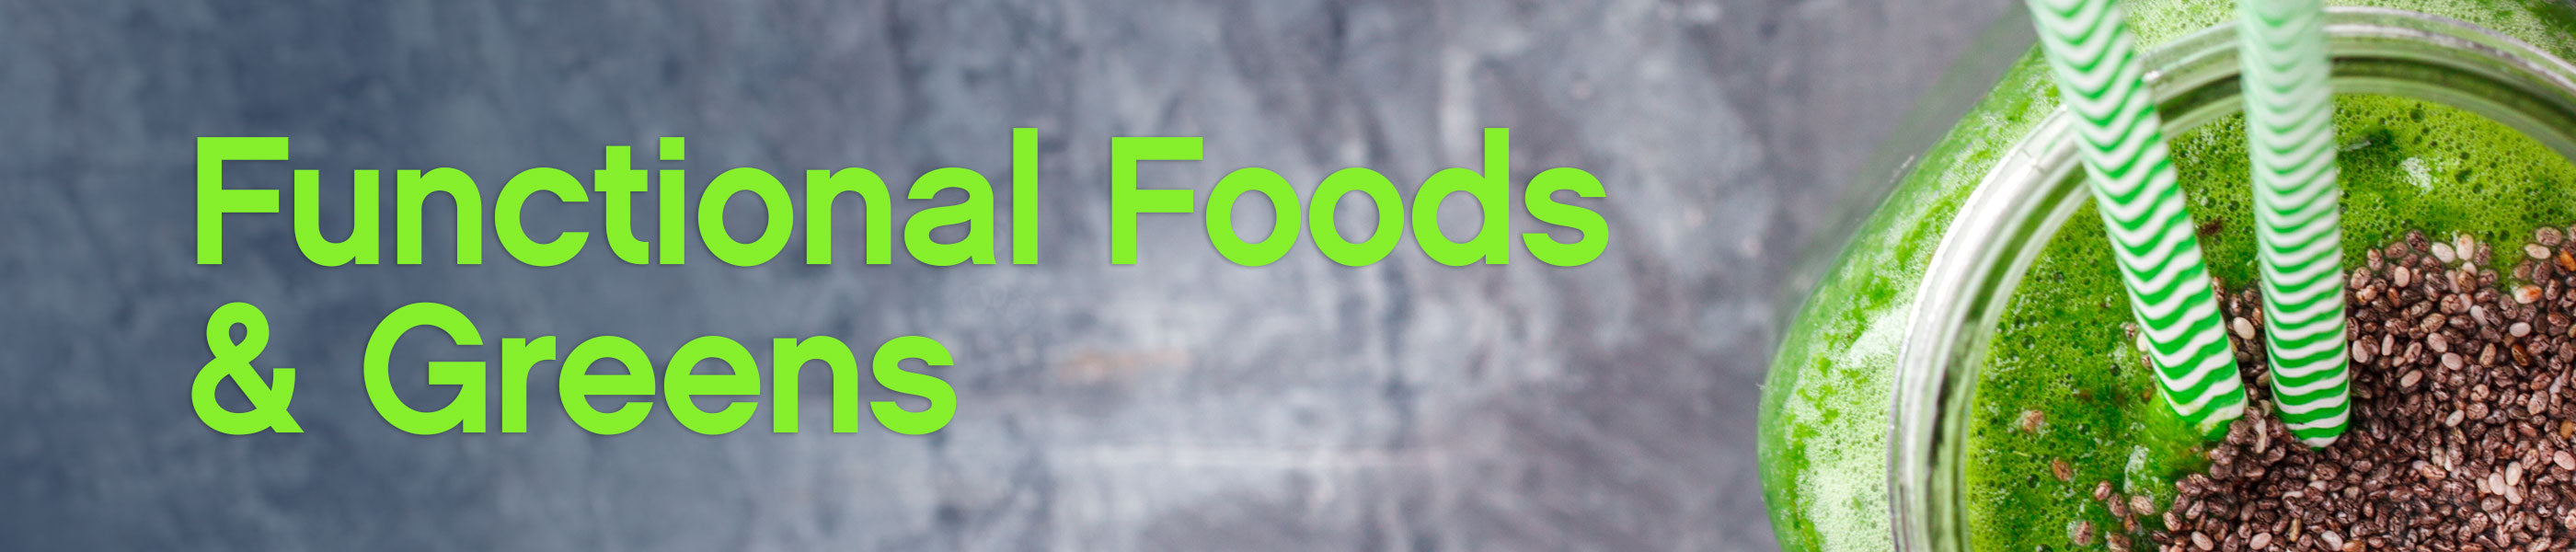 Functional Foods & Greens header image